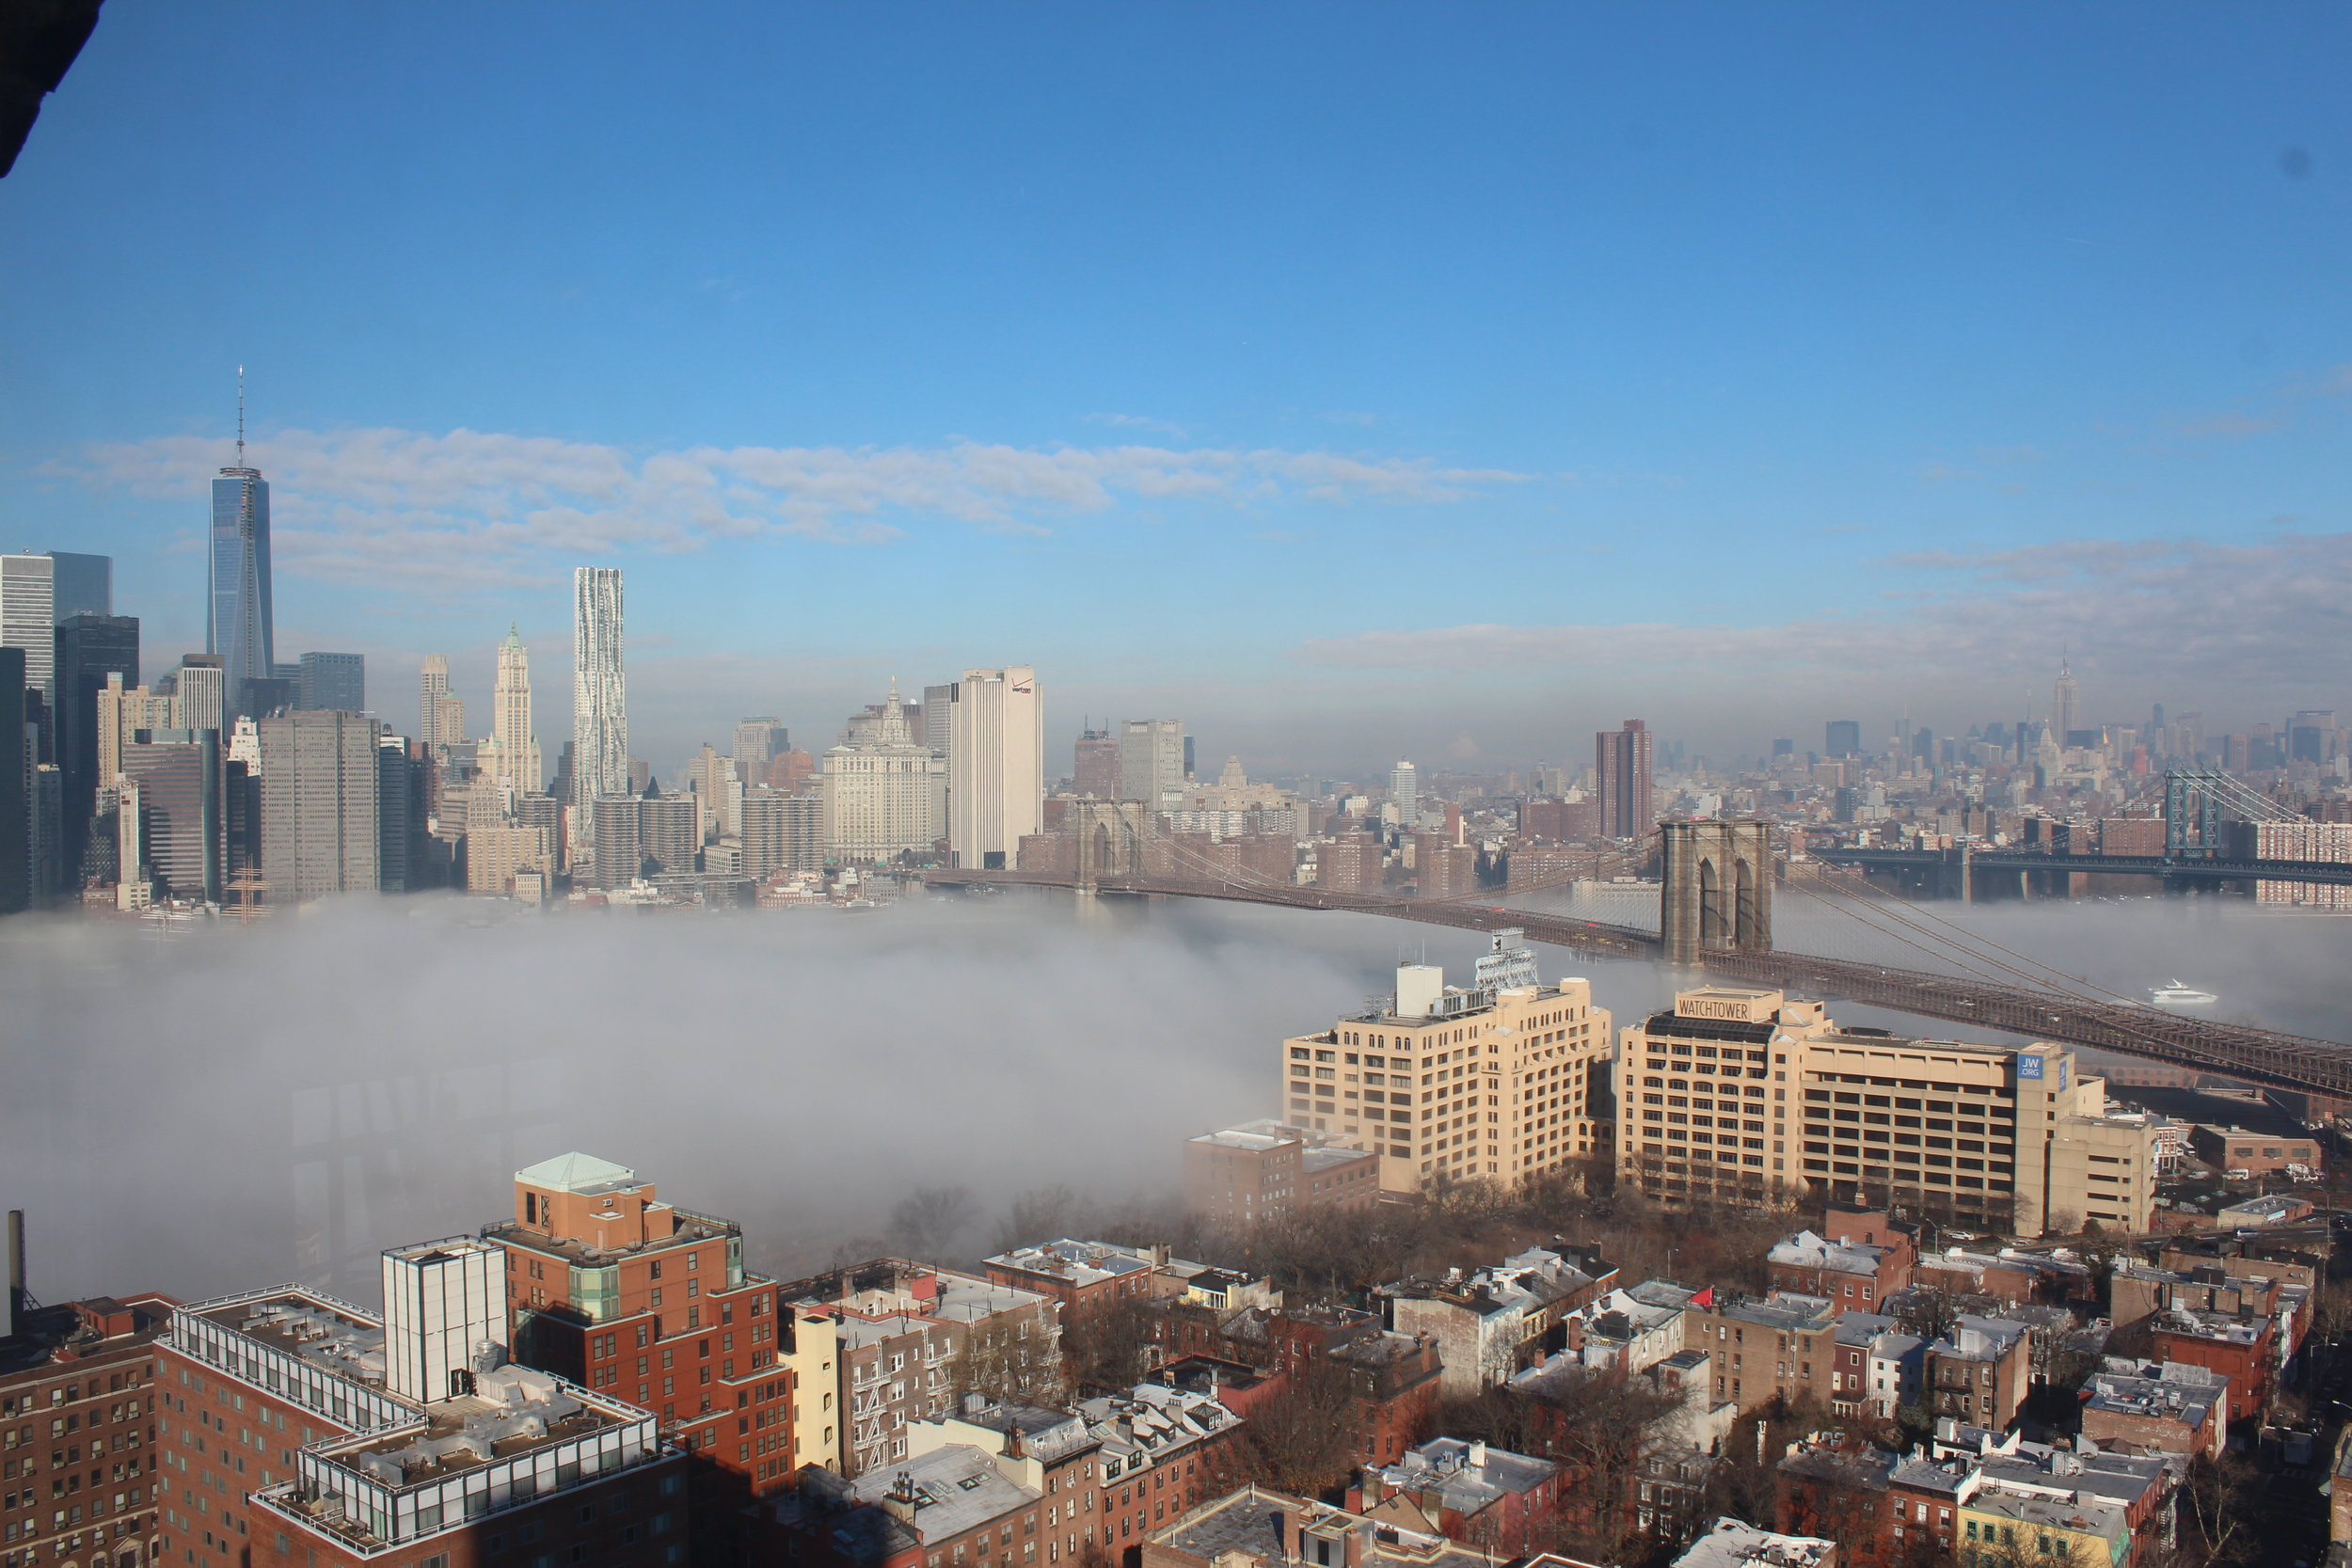 During a Polar Vortex and ice fog enveloped New York.13.JPG